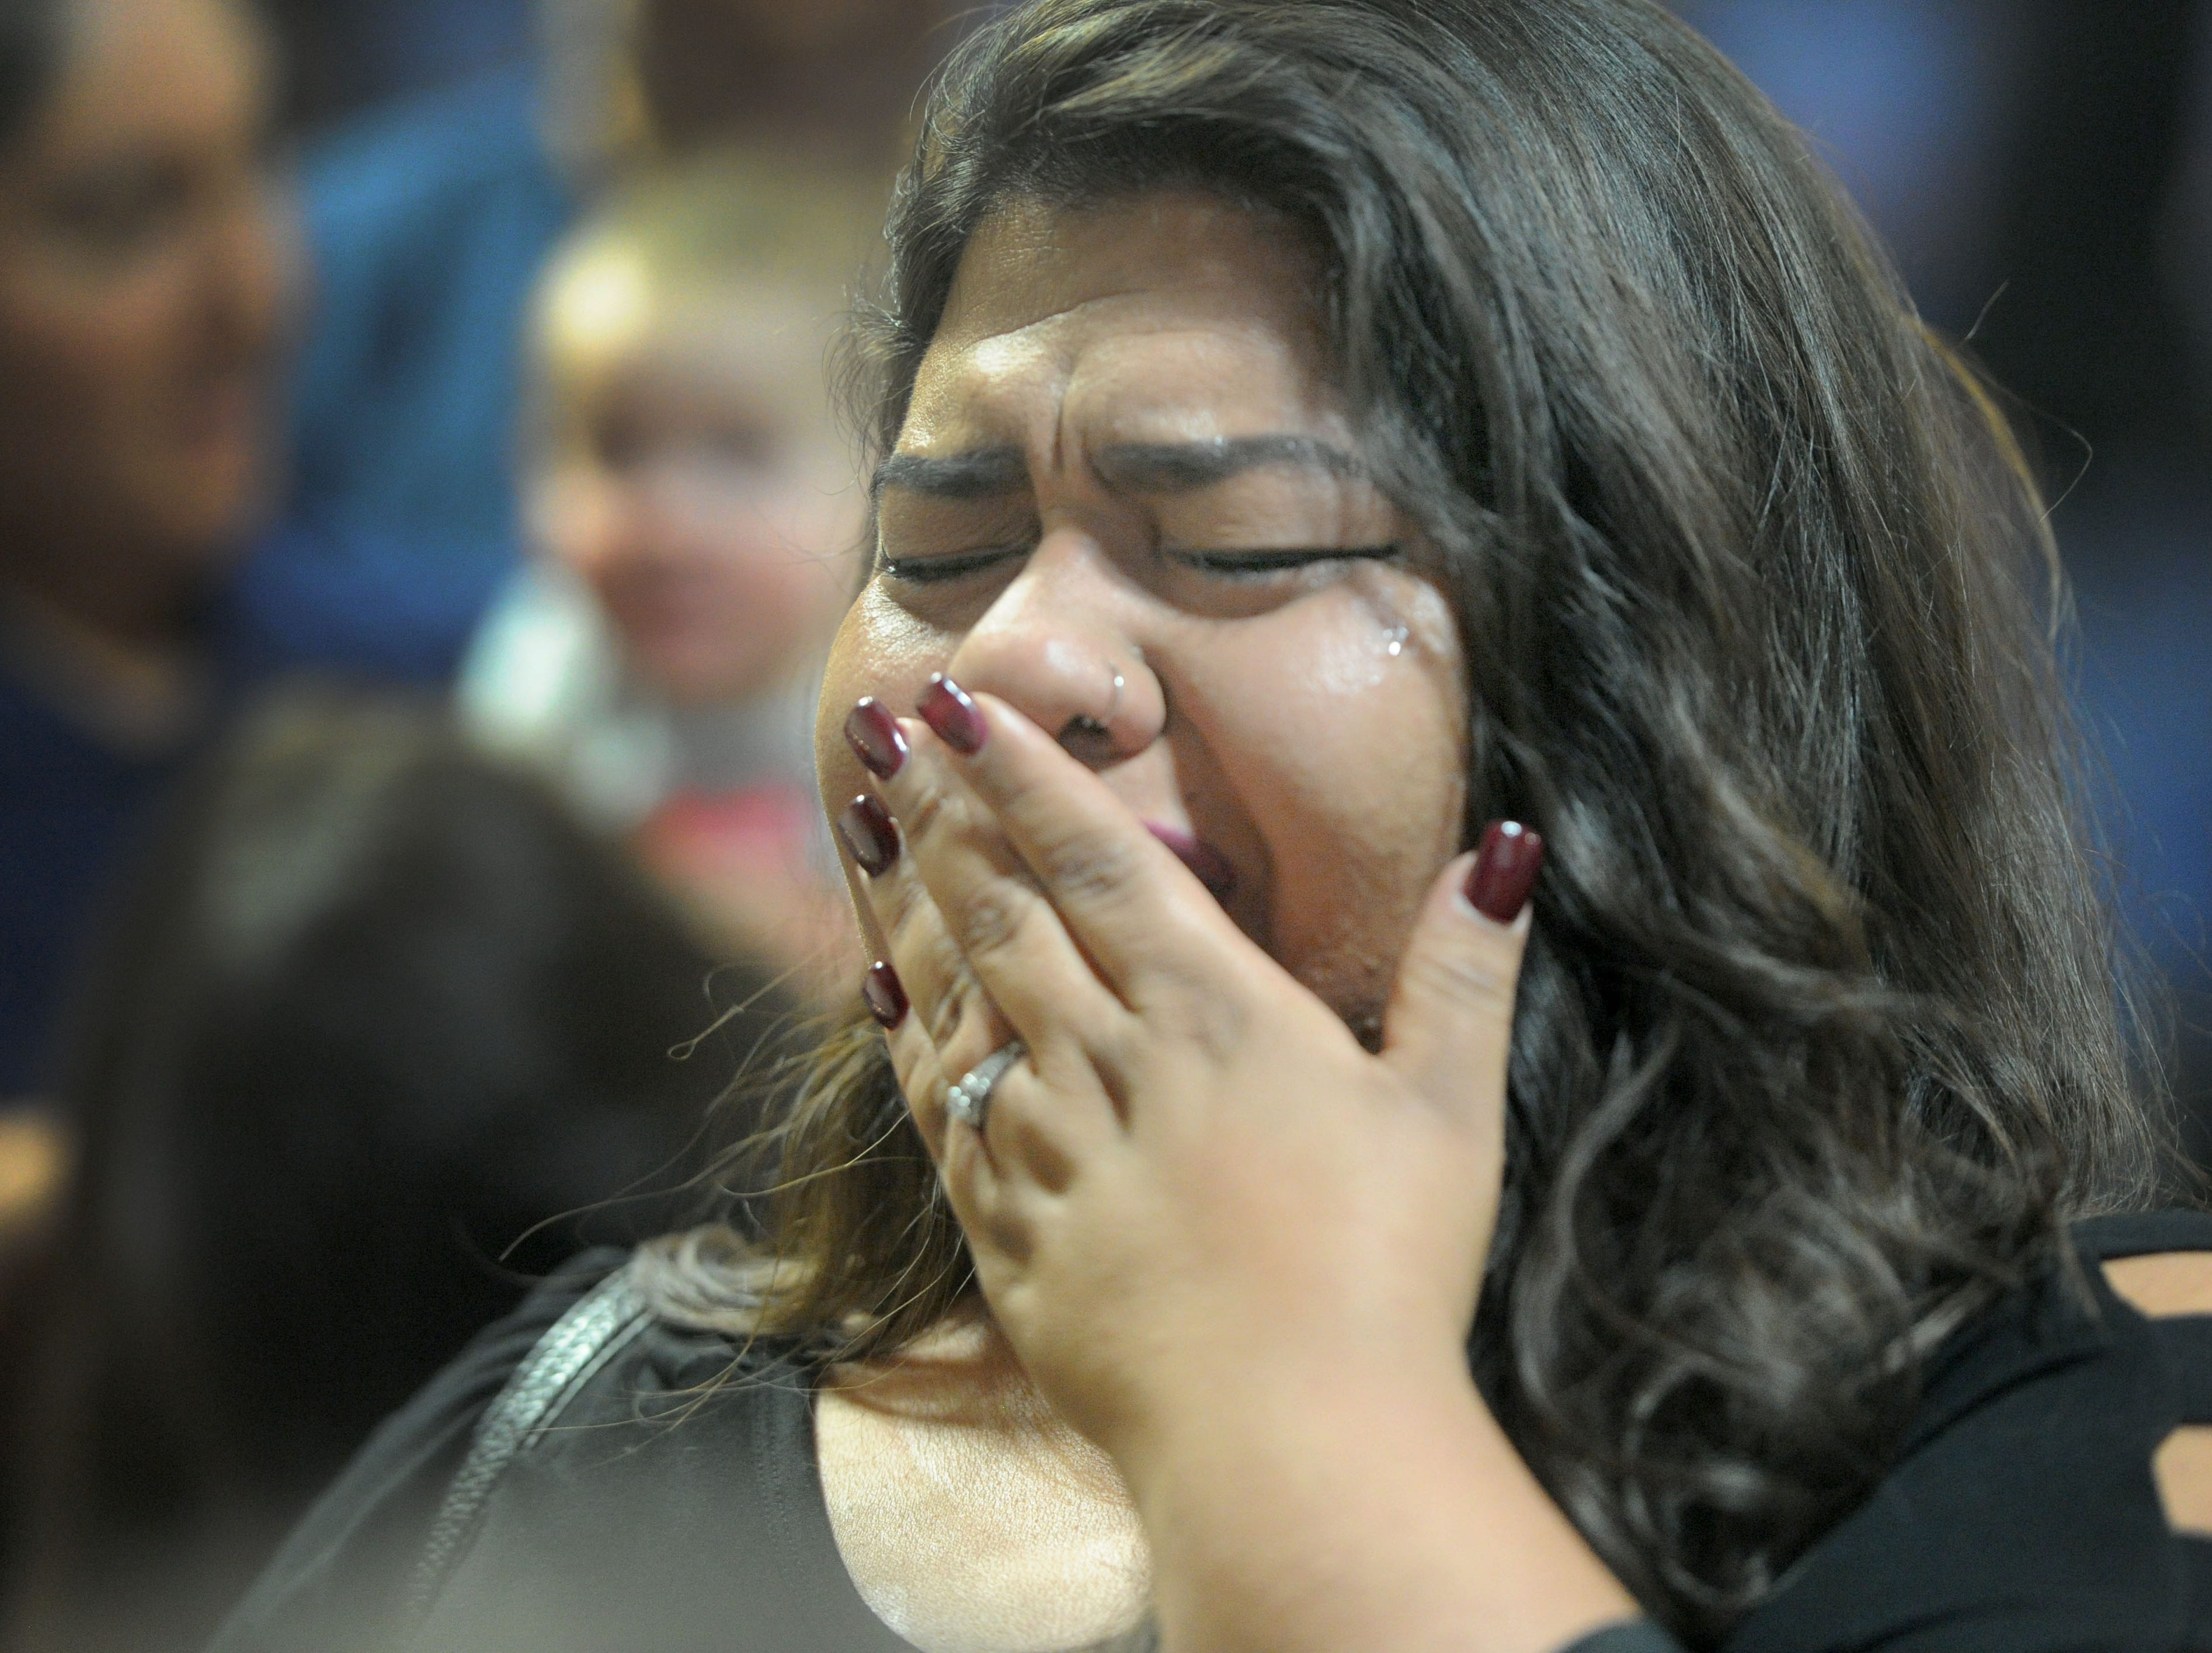 Maritza Serrato, who knew the Lopez family, cries at the memorial service for Kimberly Lopez on Saturday at the Oxnard High School Performing Arts Center.